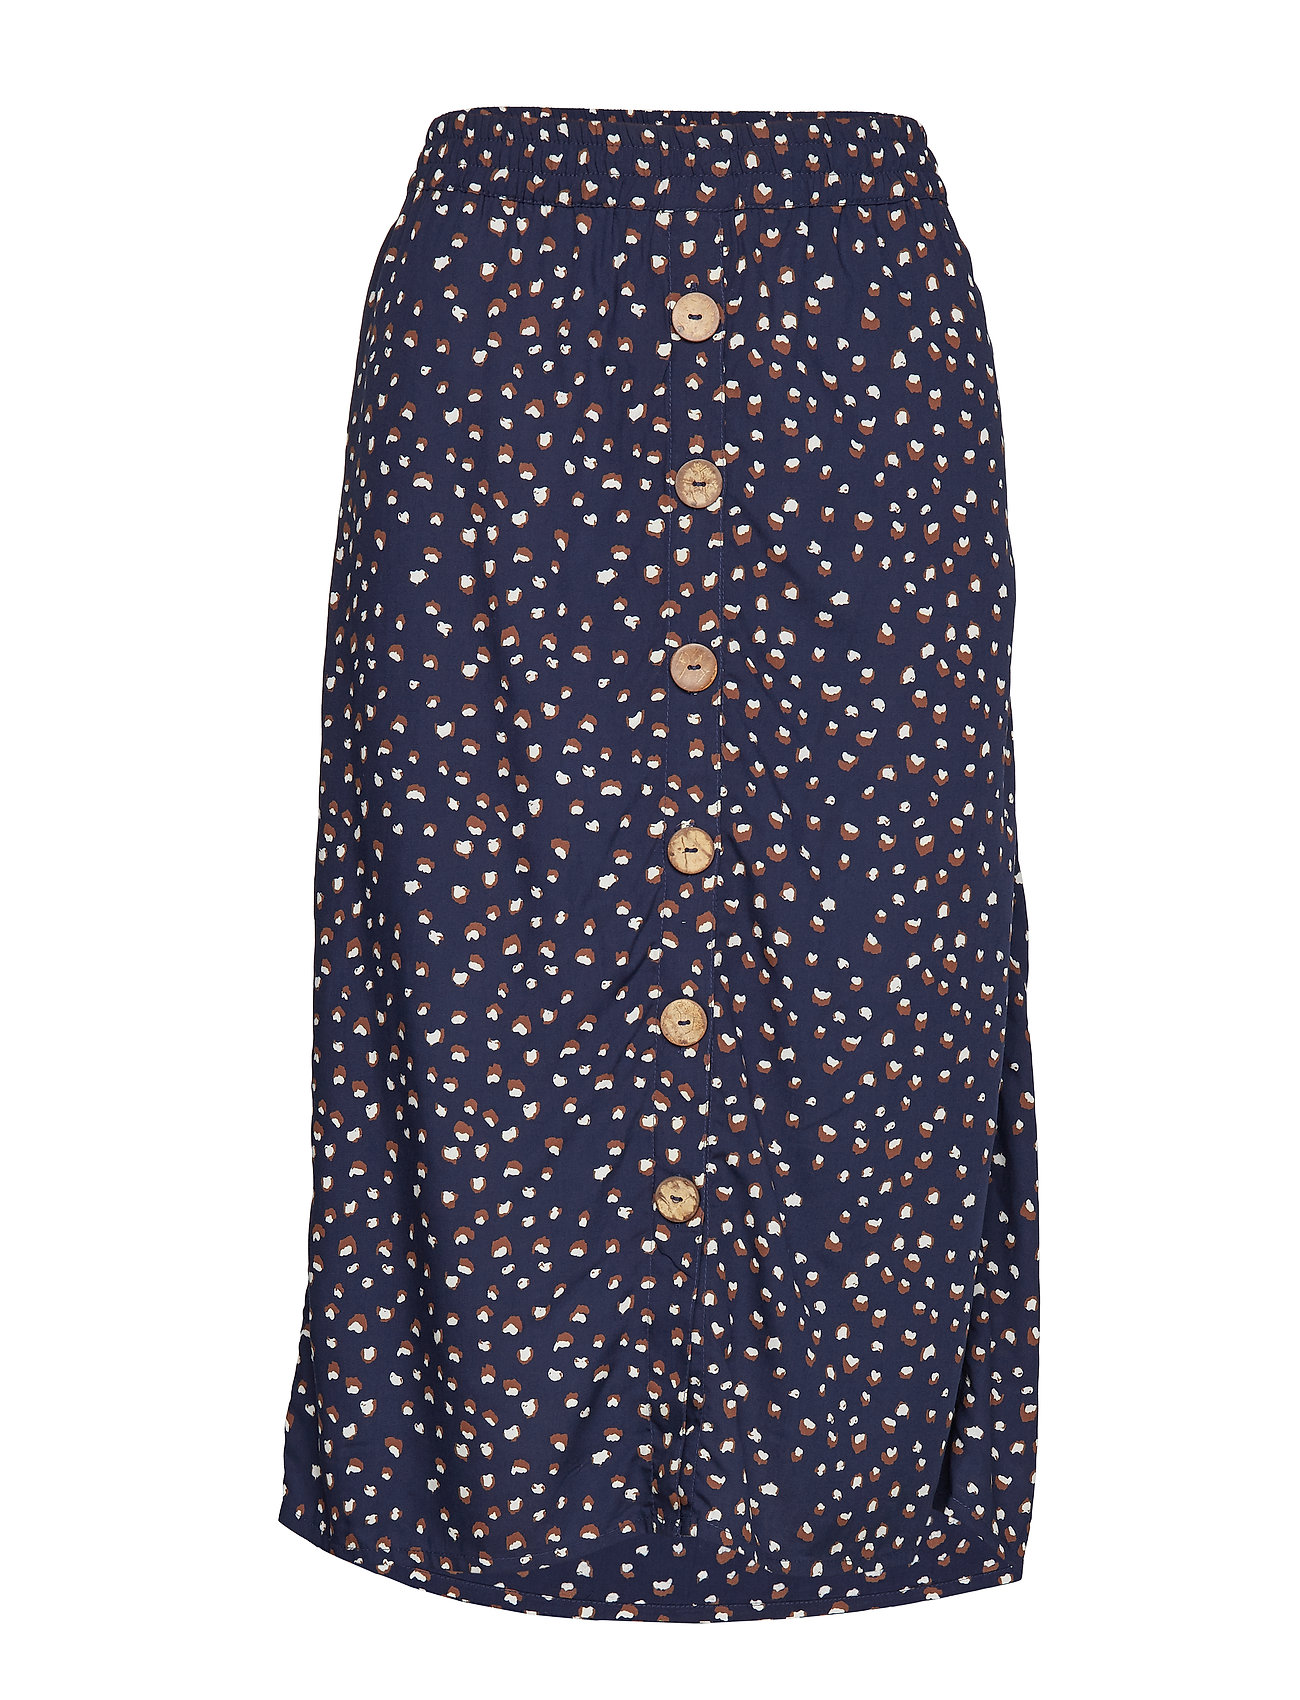 Cream Gemina Skirt - MARITIME BLUE